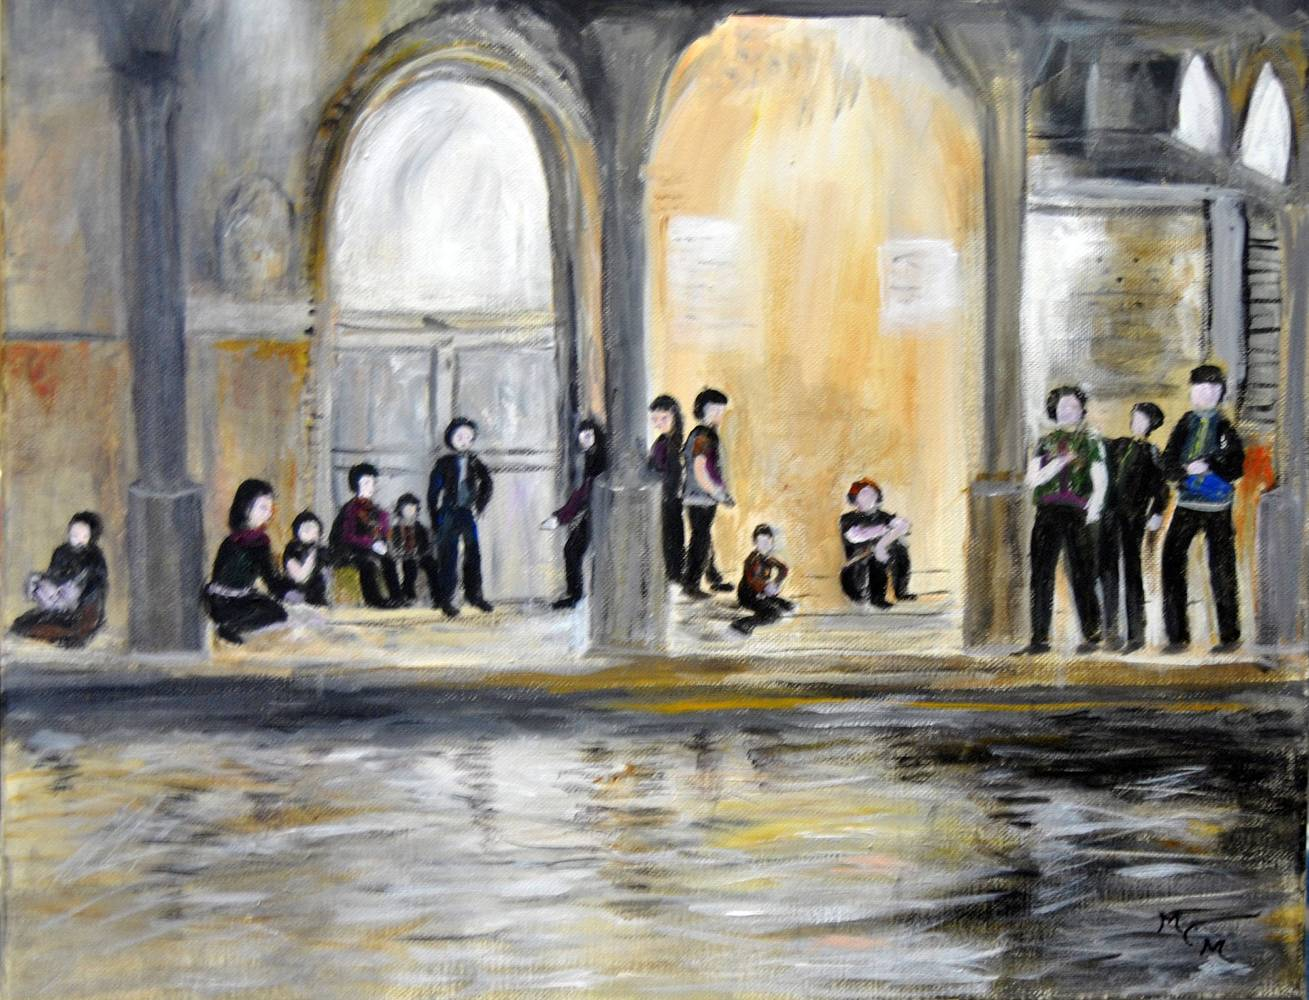 Acrylic painting Friday night in Venice  by Mary Chalmers Main